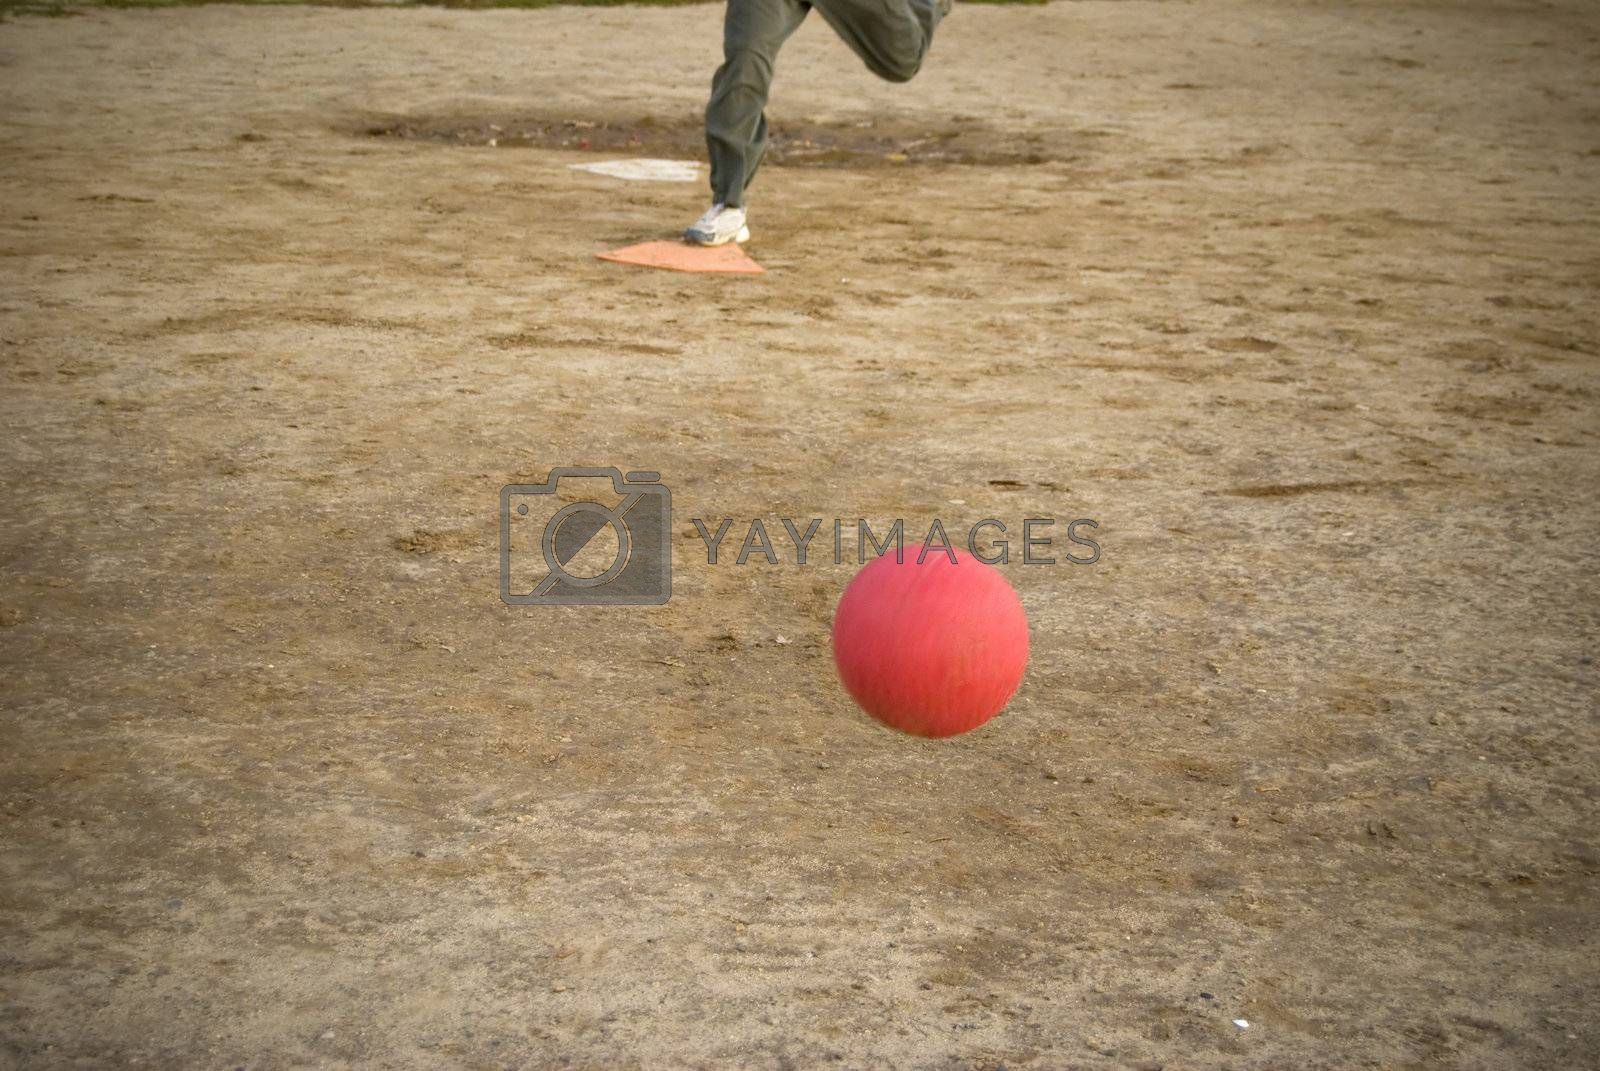 A red kickball rolls toward home plate after it is pitch - the person pictured here on plate is approaching the kick.